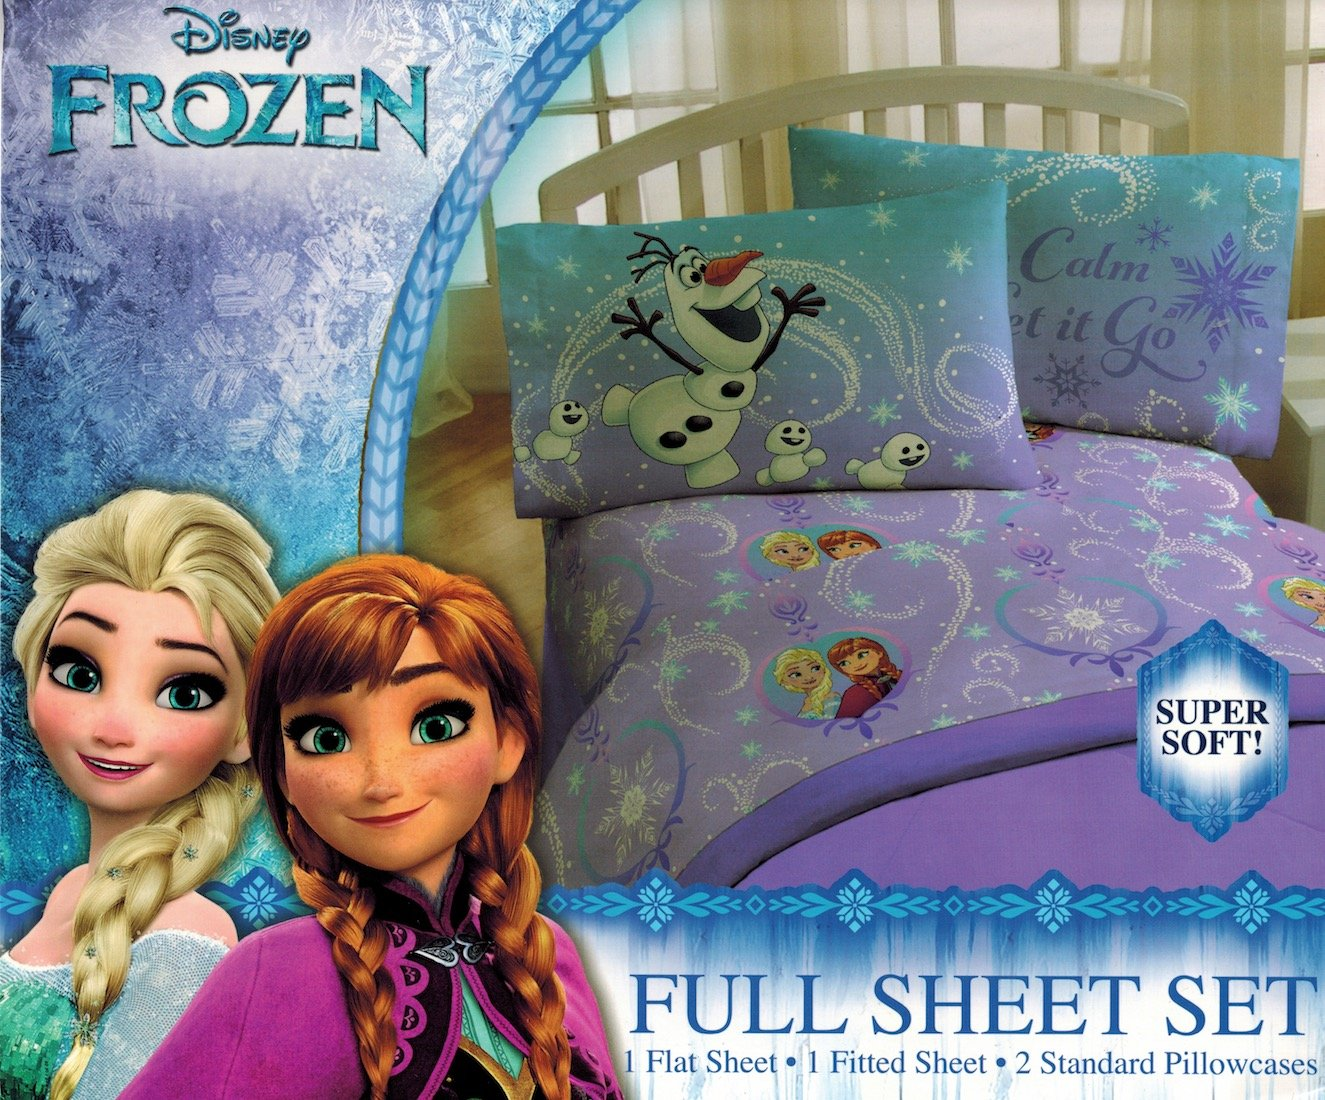 Disney Frozen 'Northern Lights' Sheet Set - Anna and Elsa, Keep Calm and Let it Go - Soft and Comfortable Microfiber Sheets (Full)